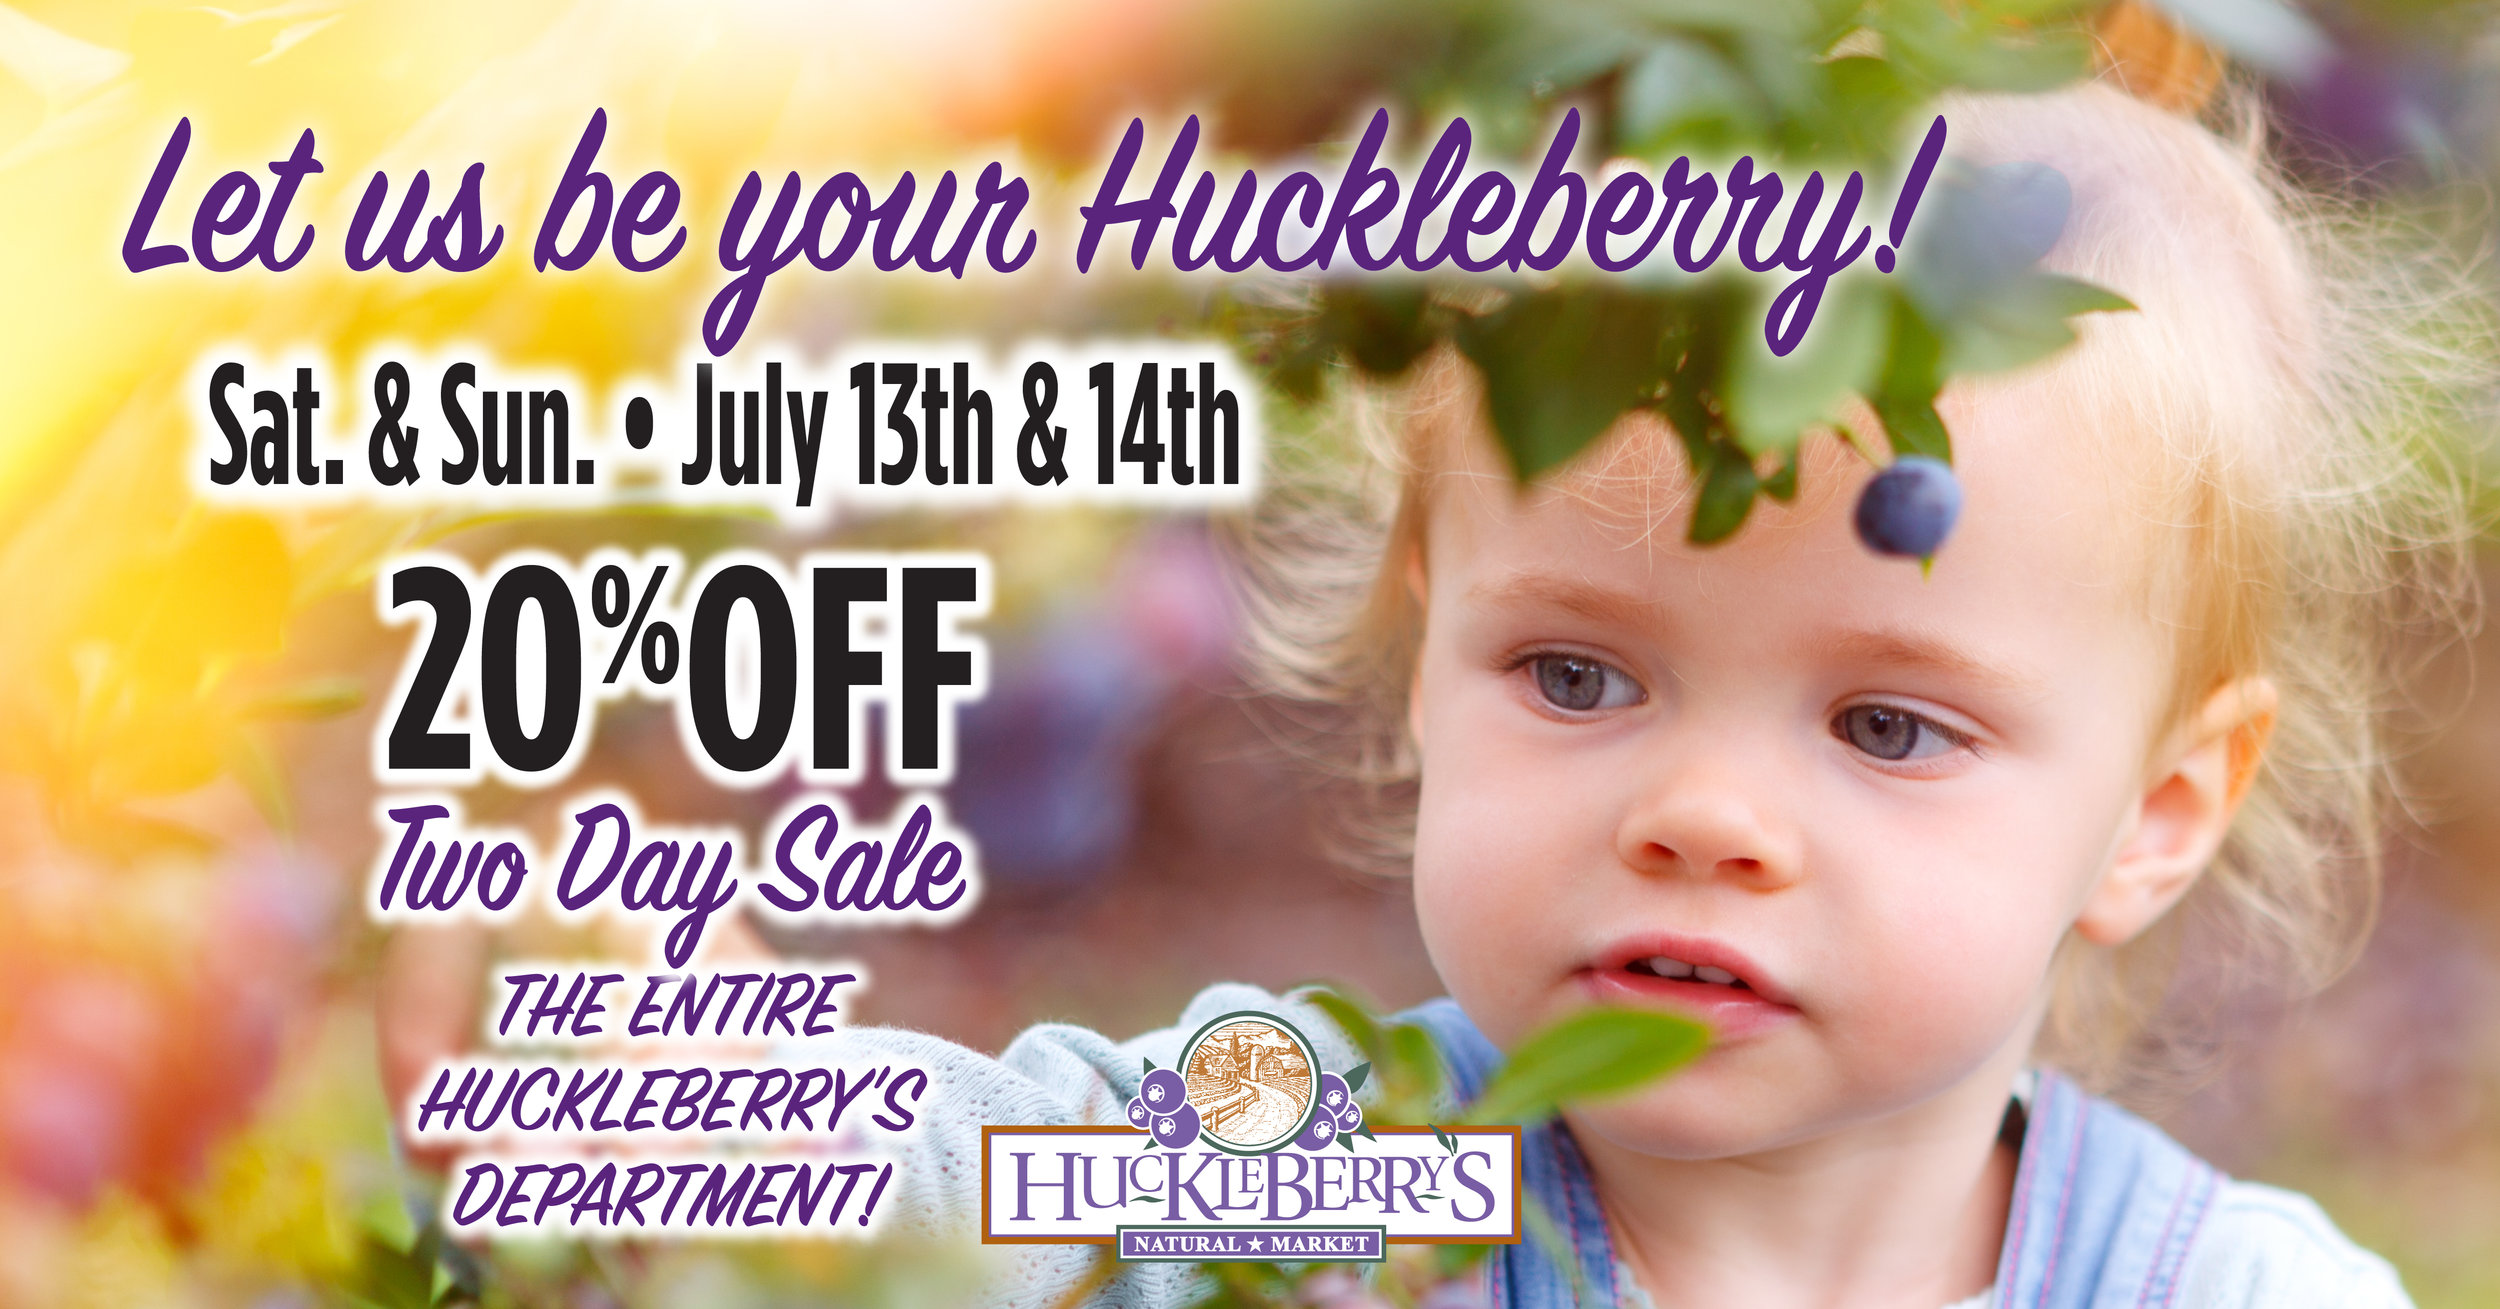 Hucks - Entire Dept Sale - July 13_fb-2-day-sale.jpg